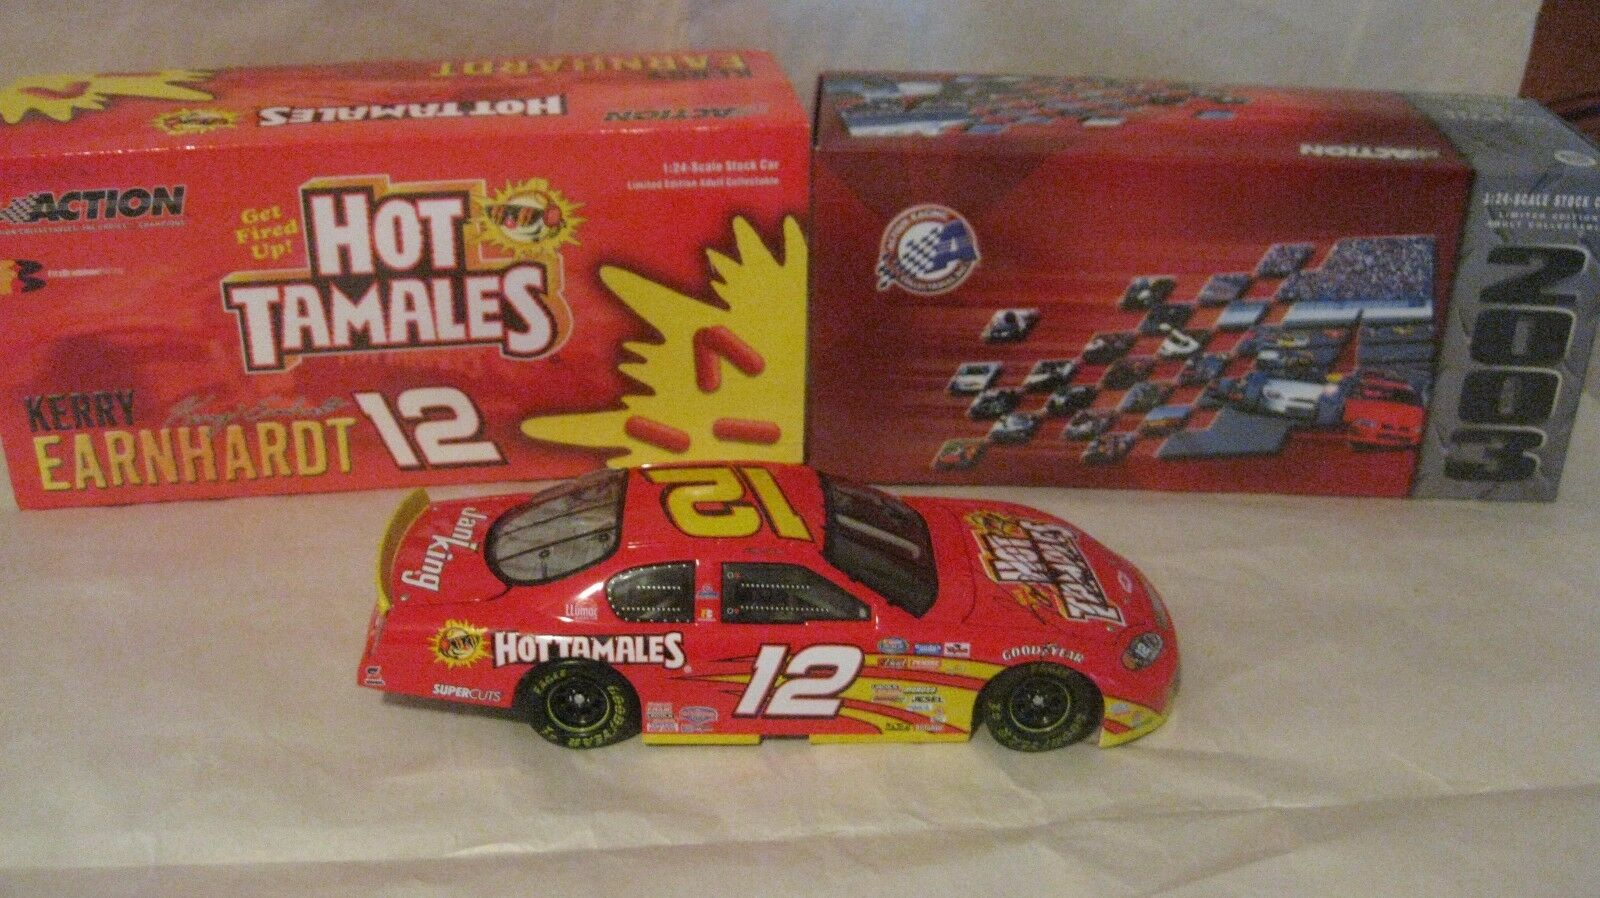 Nascar Kerry Earnhardt Signed Hot Tamales Monte Carlo 124 Scale Diecast 2003